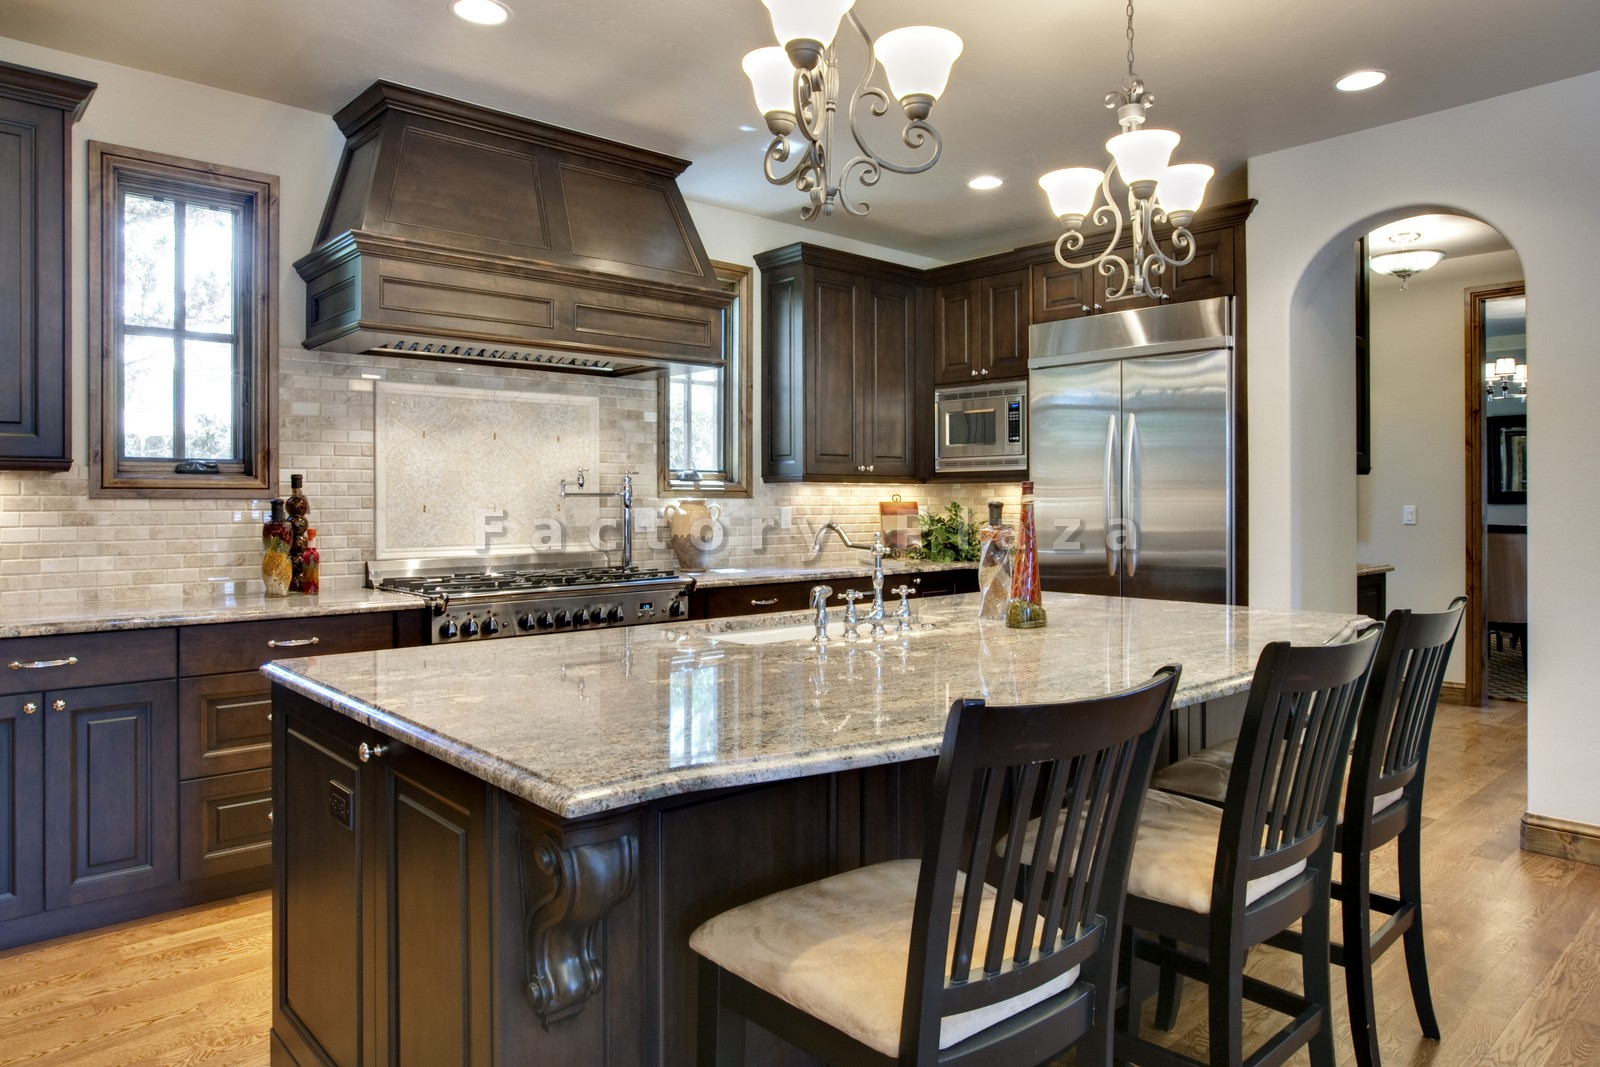 alluring replacement colonial white granite countertop colonial kitchen design Colonial White Granite with dupont edge